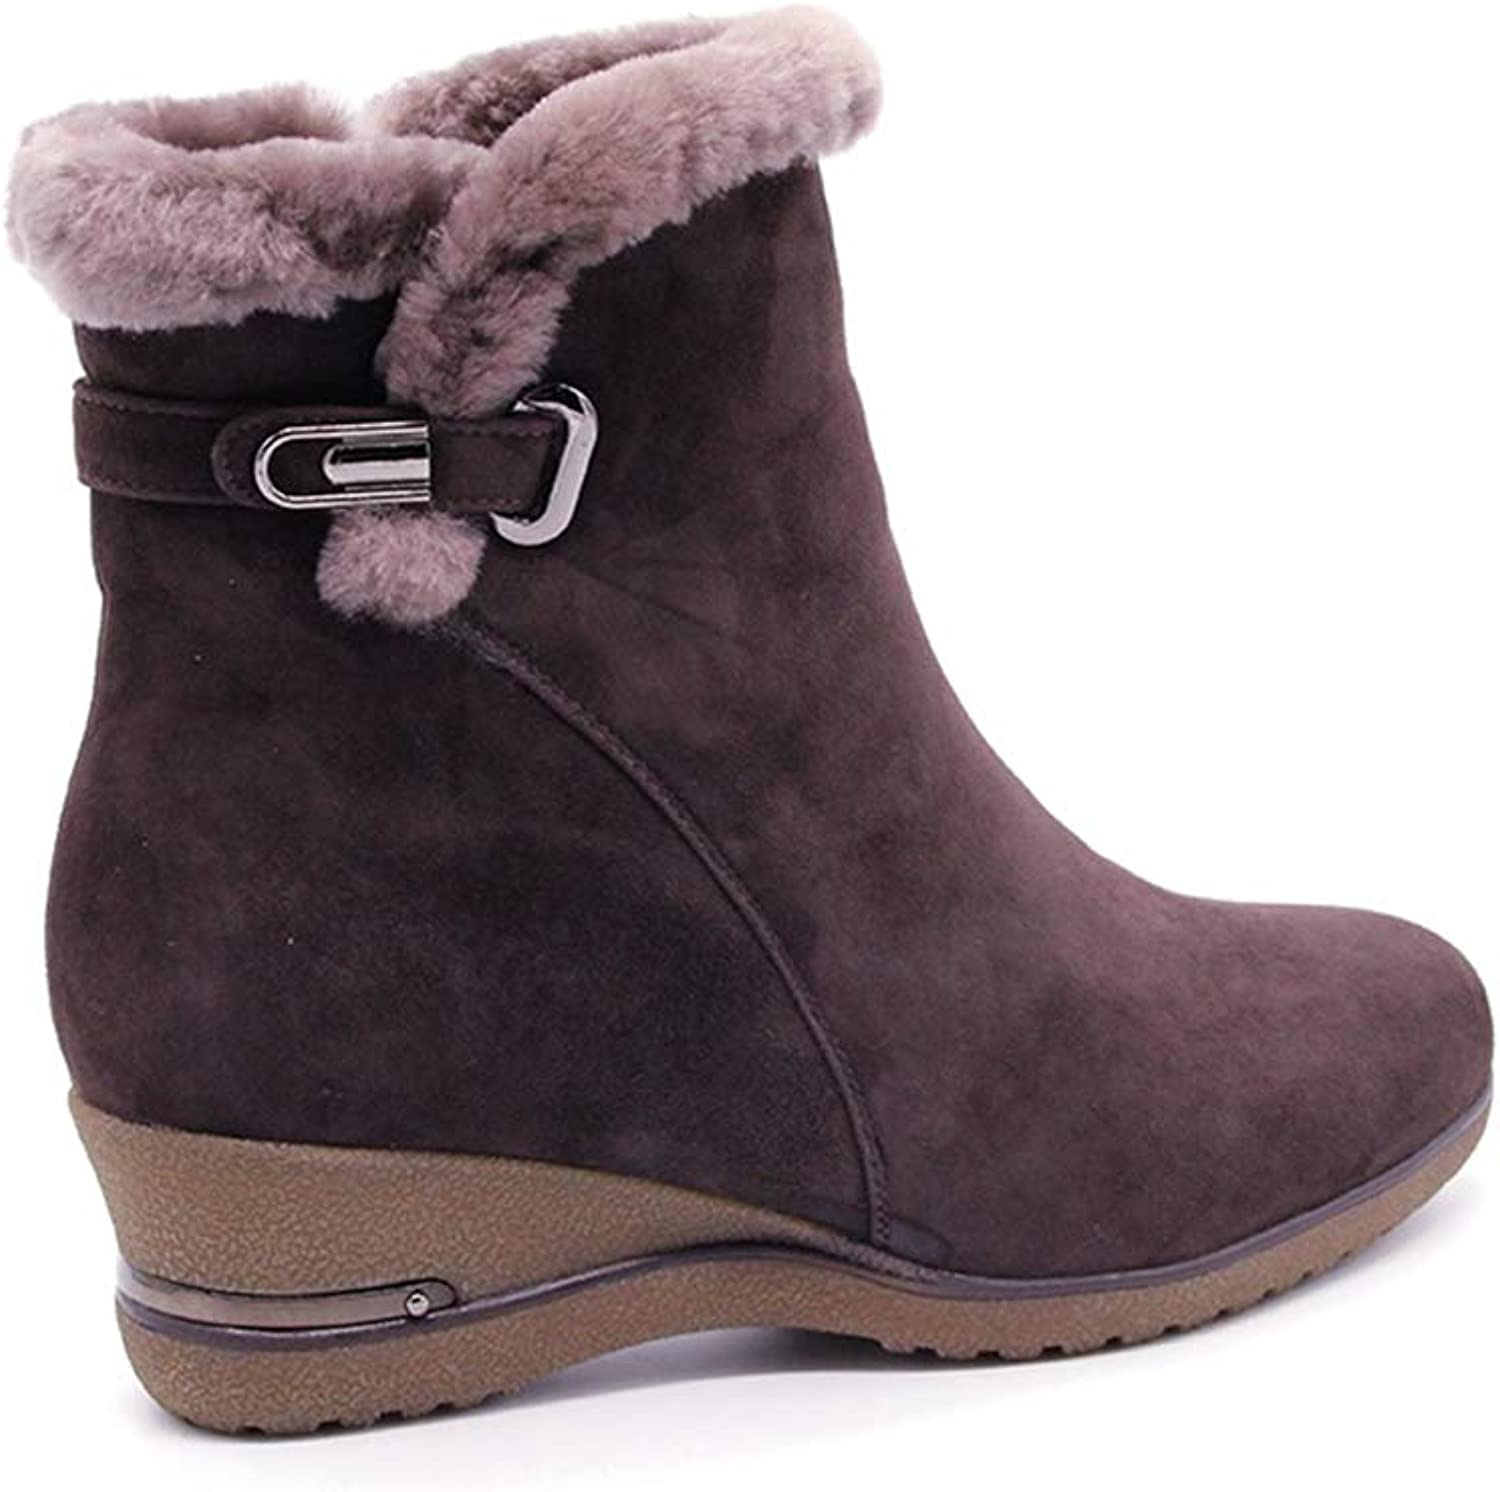 T-JULY Winter Women 's Snow Boots Fashion Wedge Platform Real Leather Wool Fur Cross Strap Ankle shoes